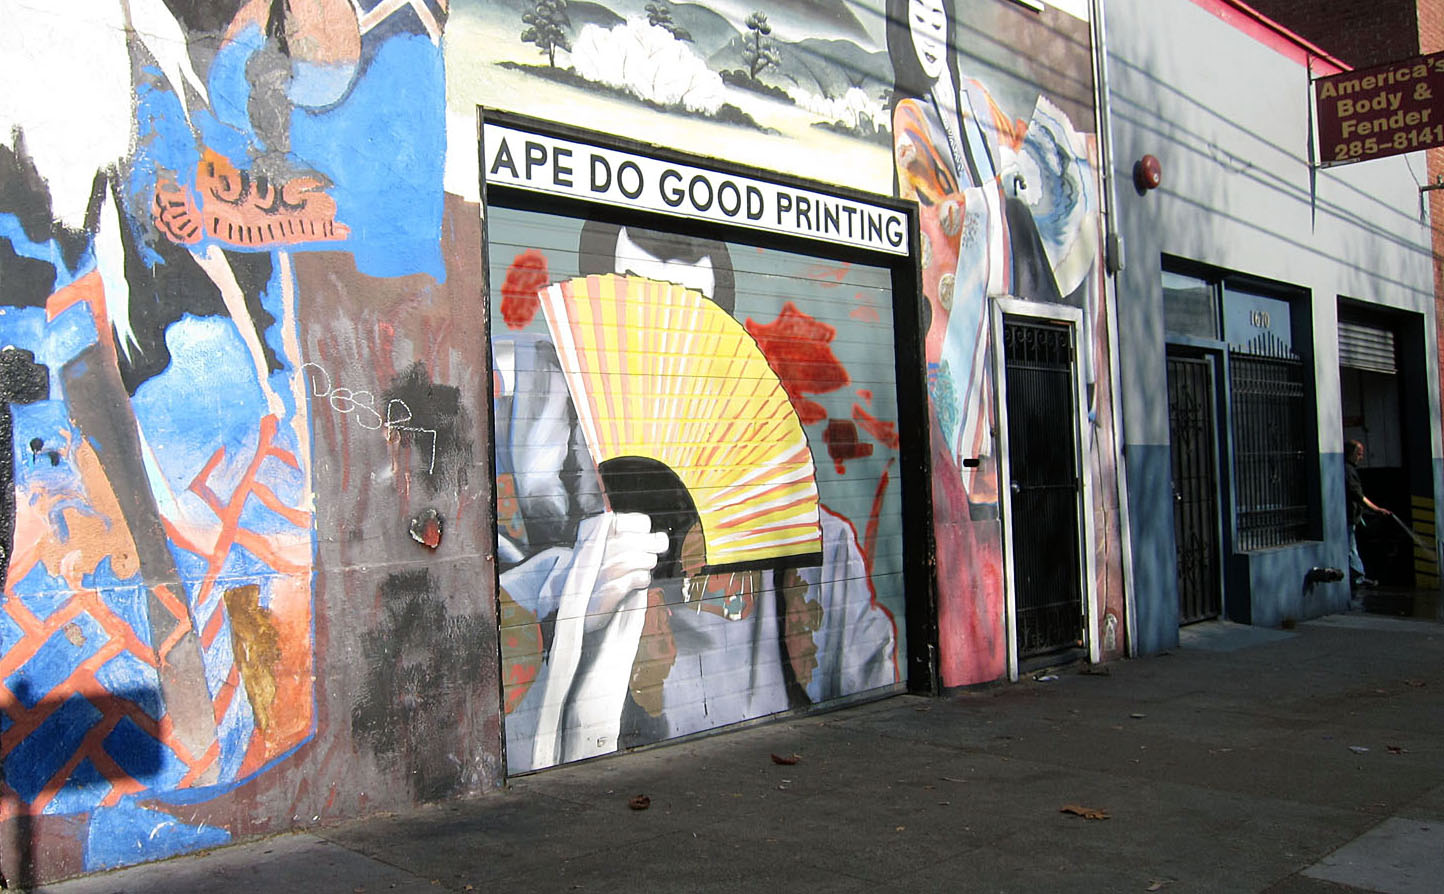 Ape Do Good Printing bids Mission adieu